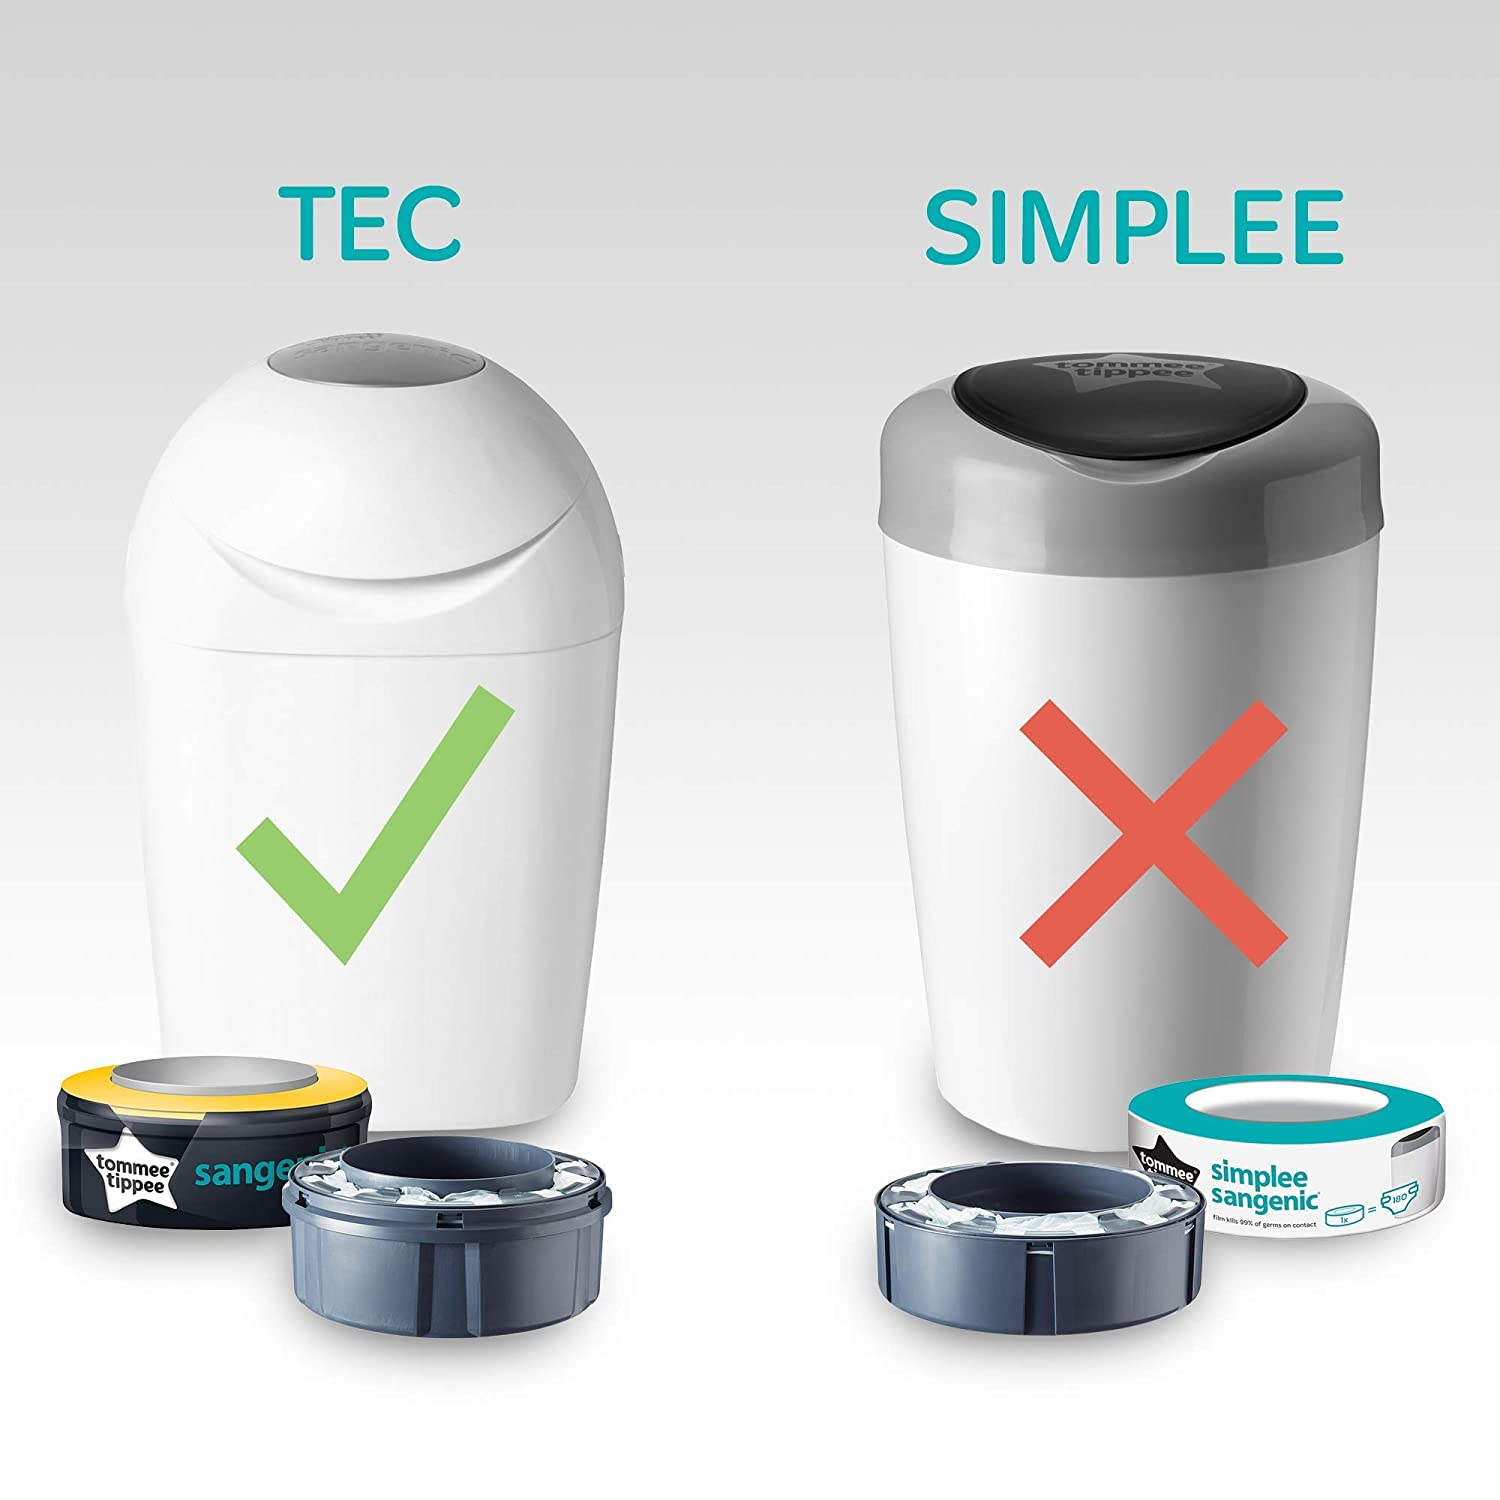 Amazon.com : Diaper pail refills for the diaper trash can by Tommee Tippee. (18 Pack) : Baby